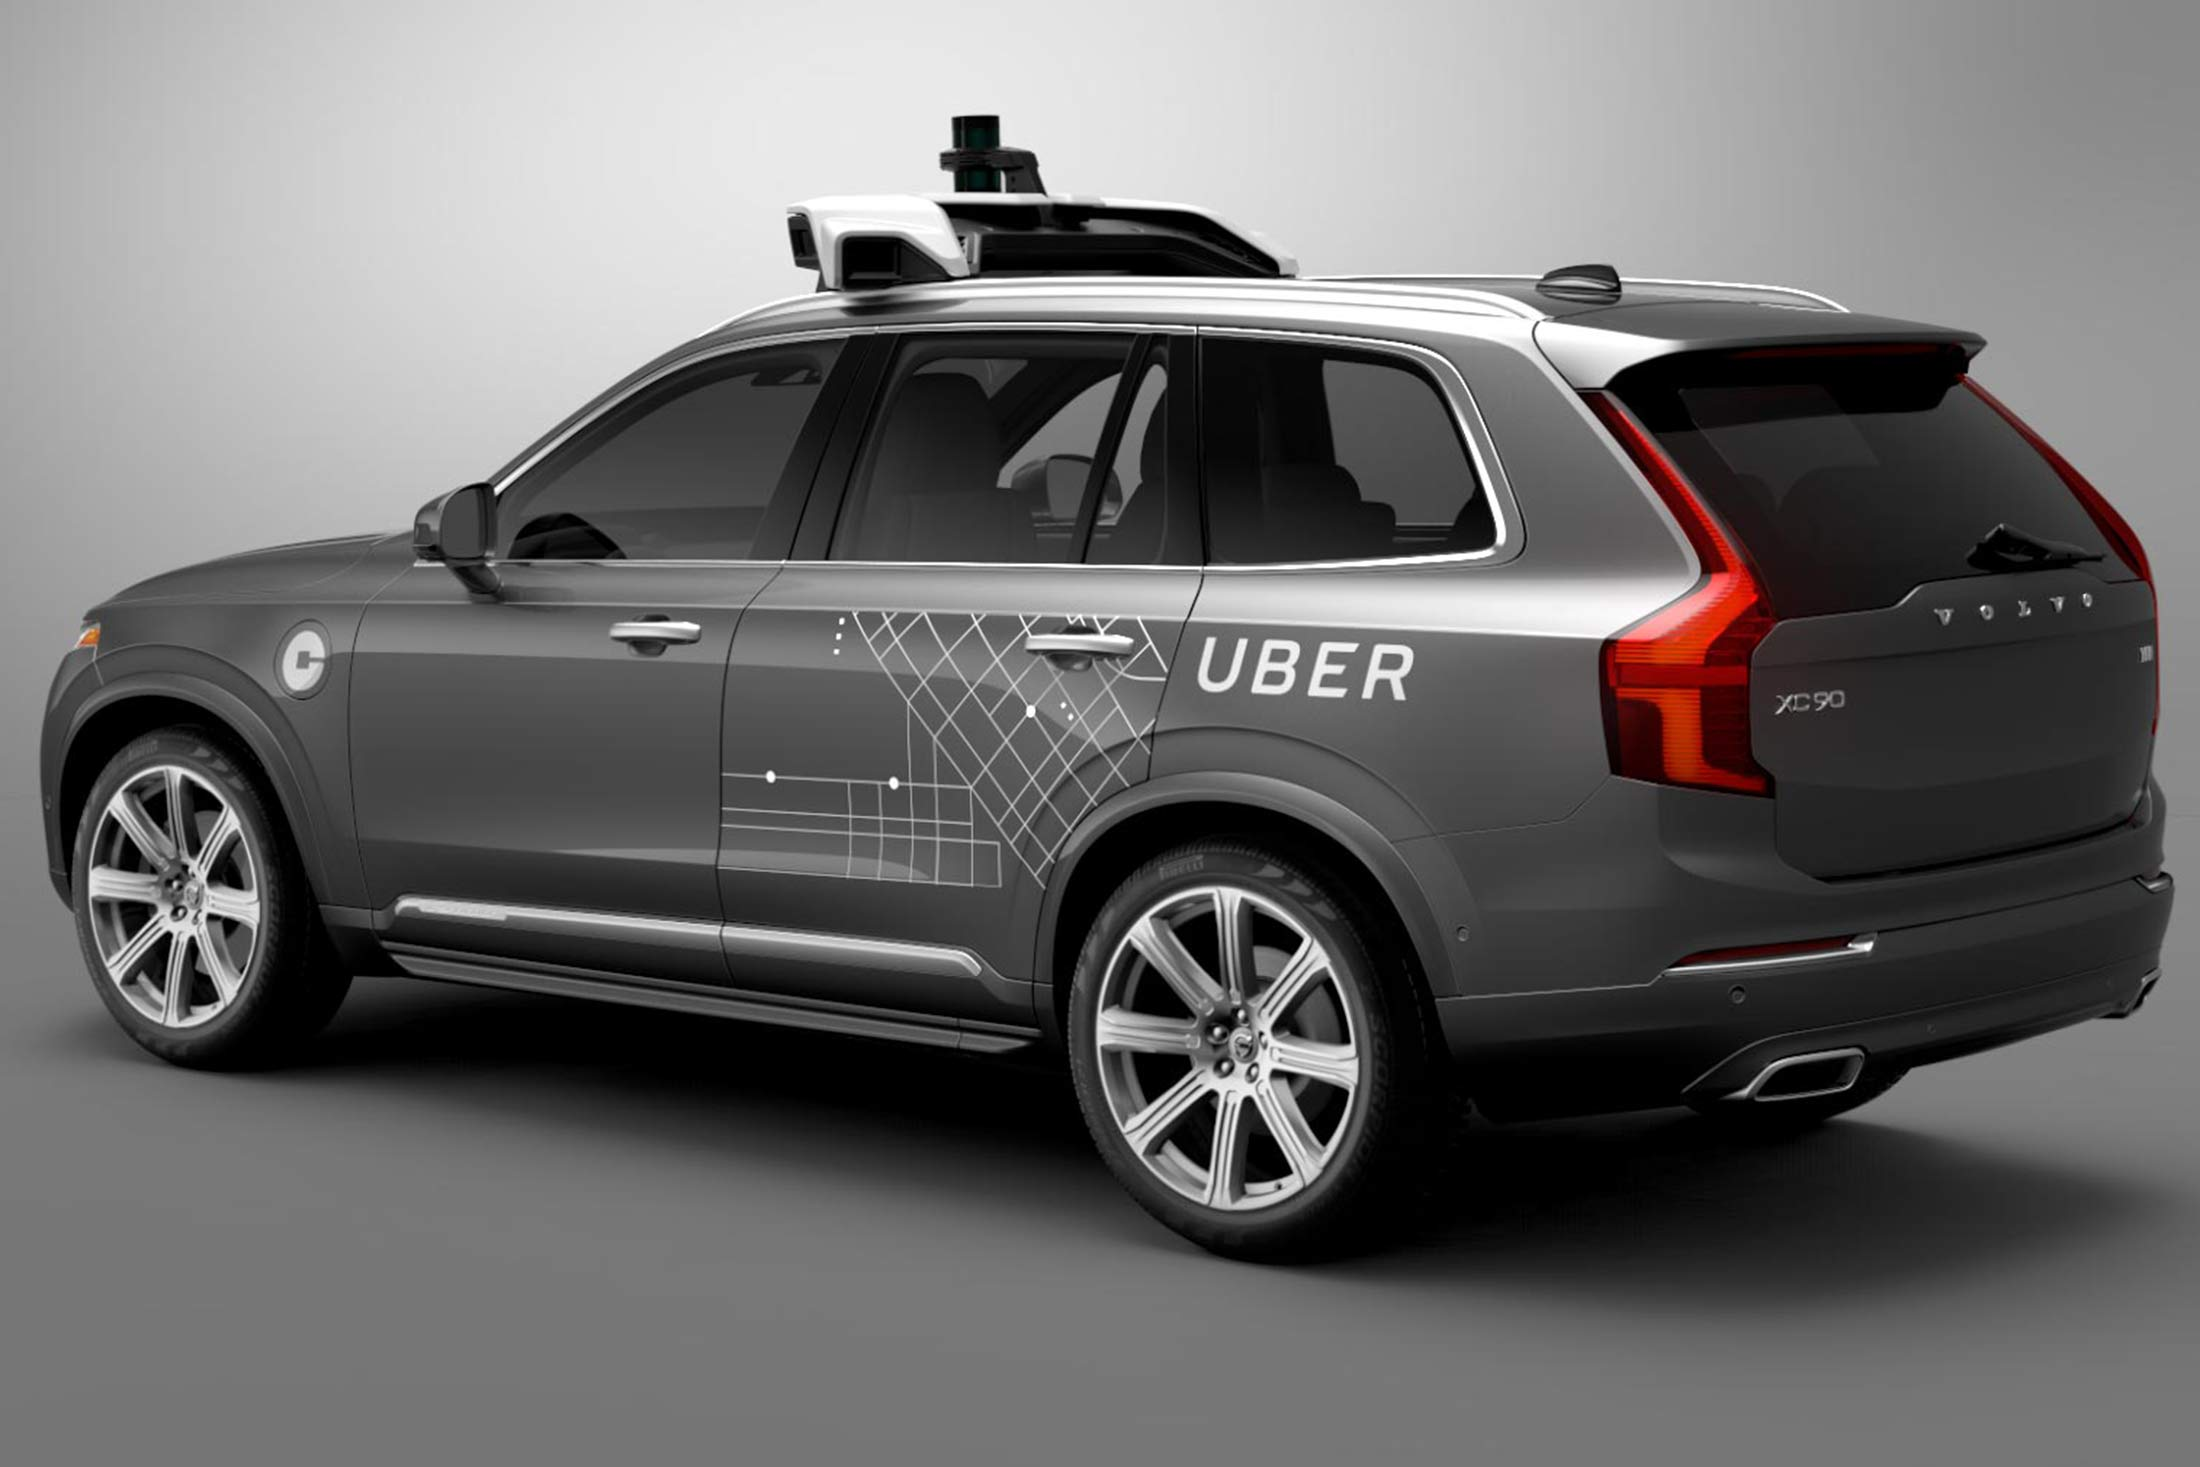 Uber launches self-driving pilot in San Francisco with Volvo